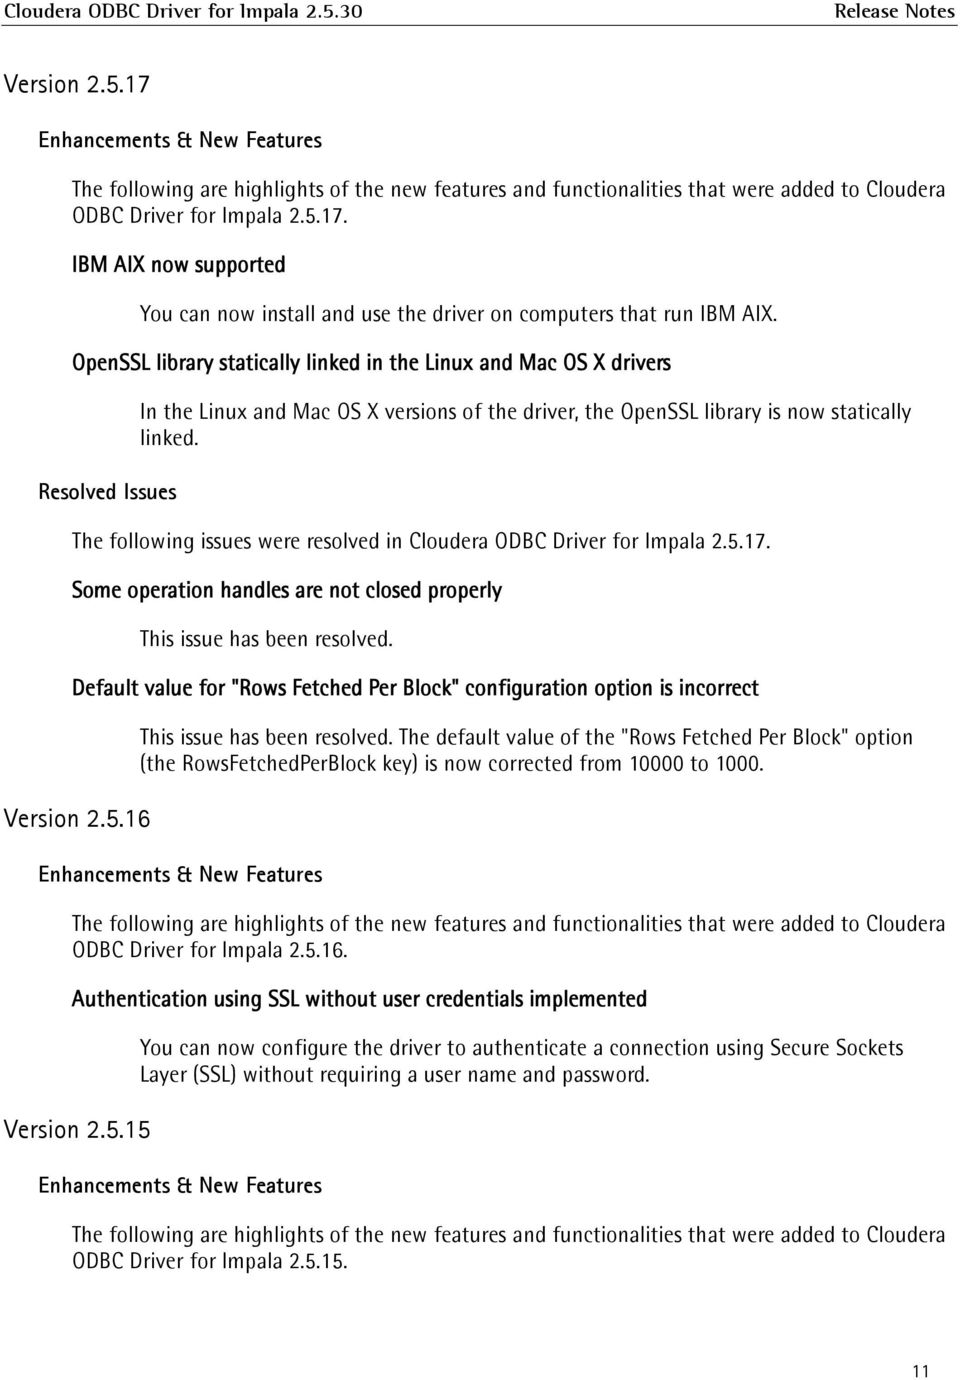 The release notes provide details of enhancements and